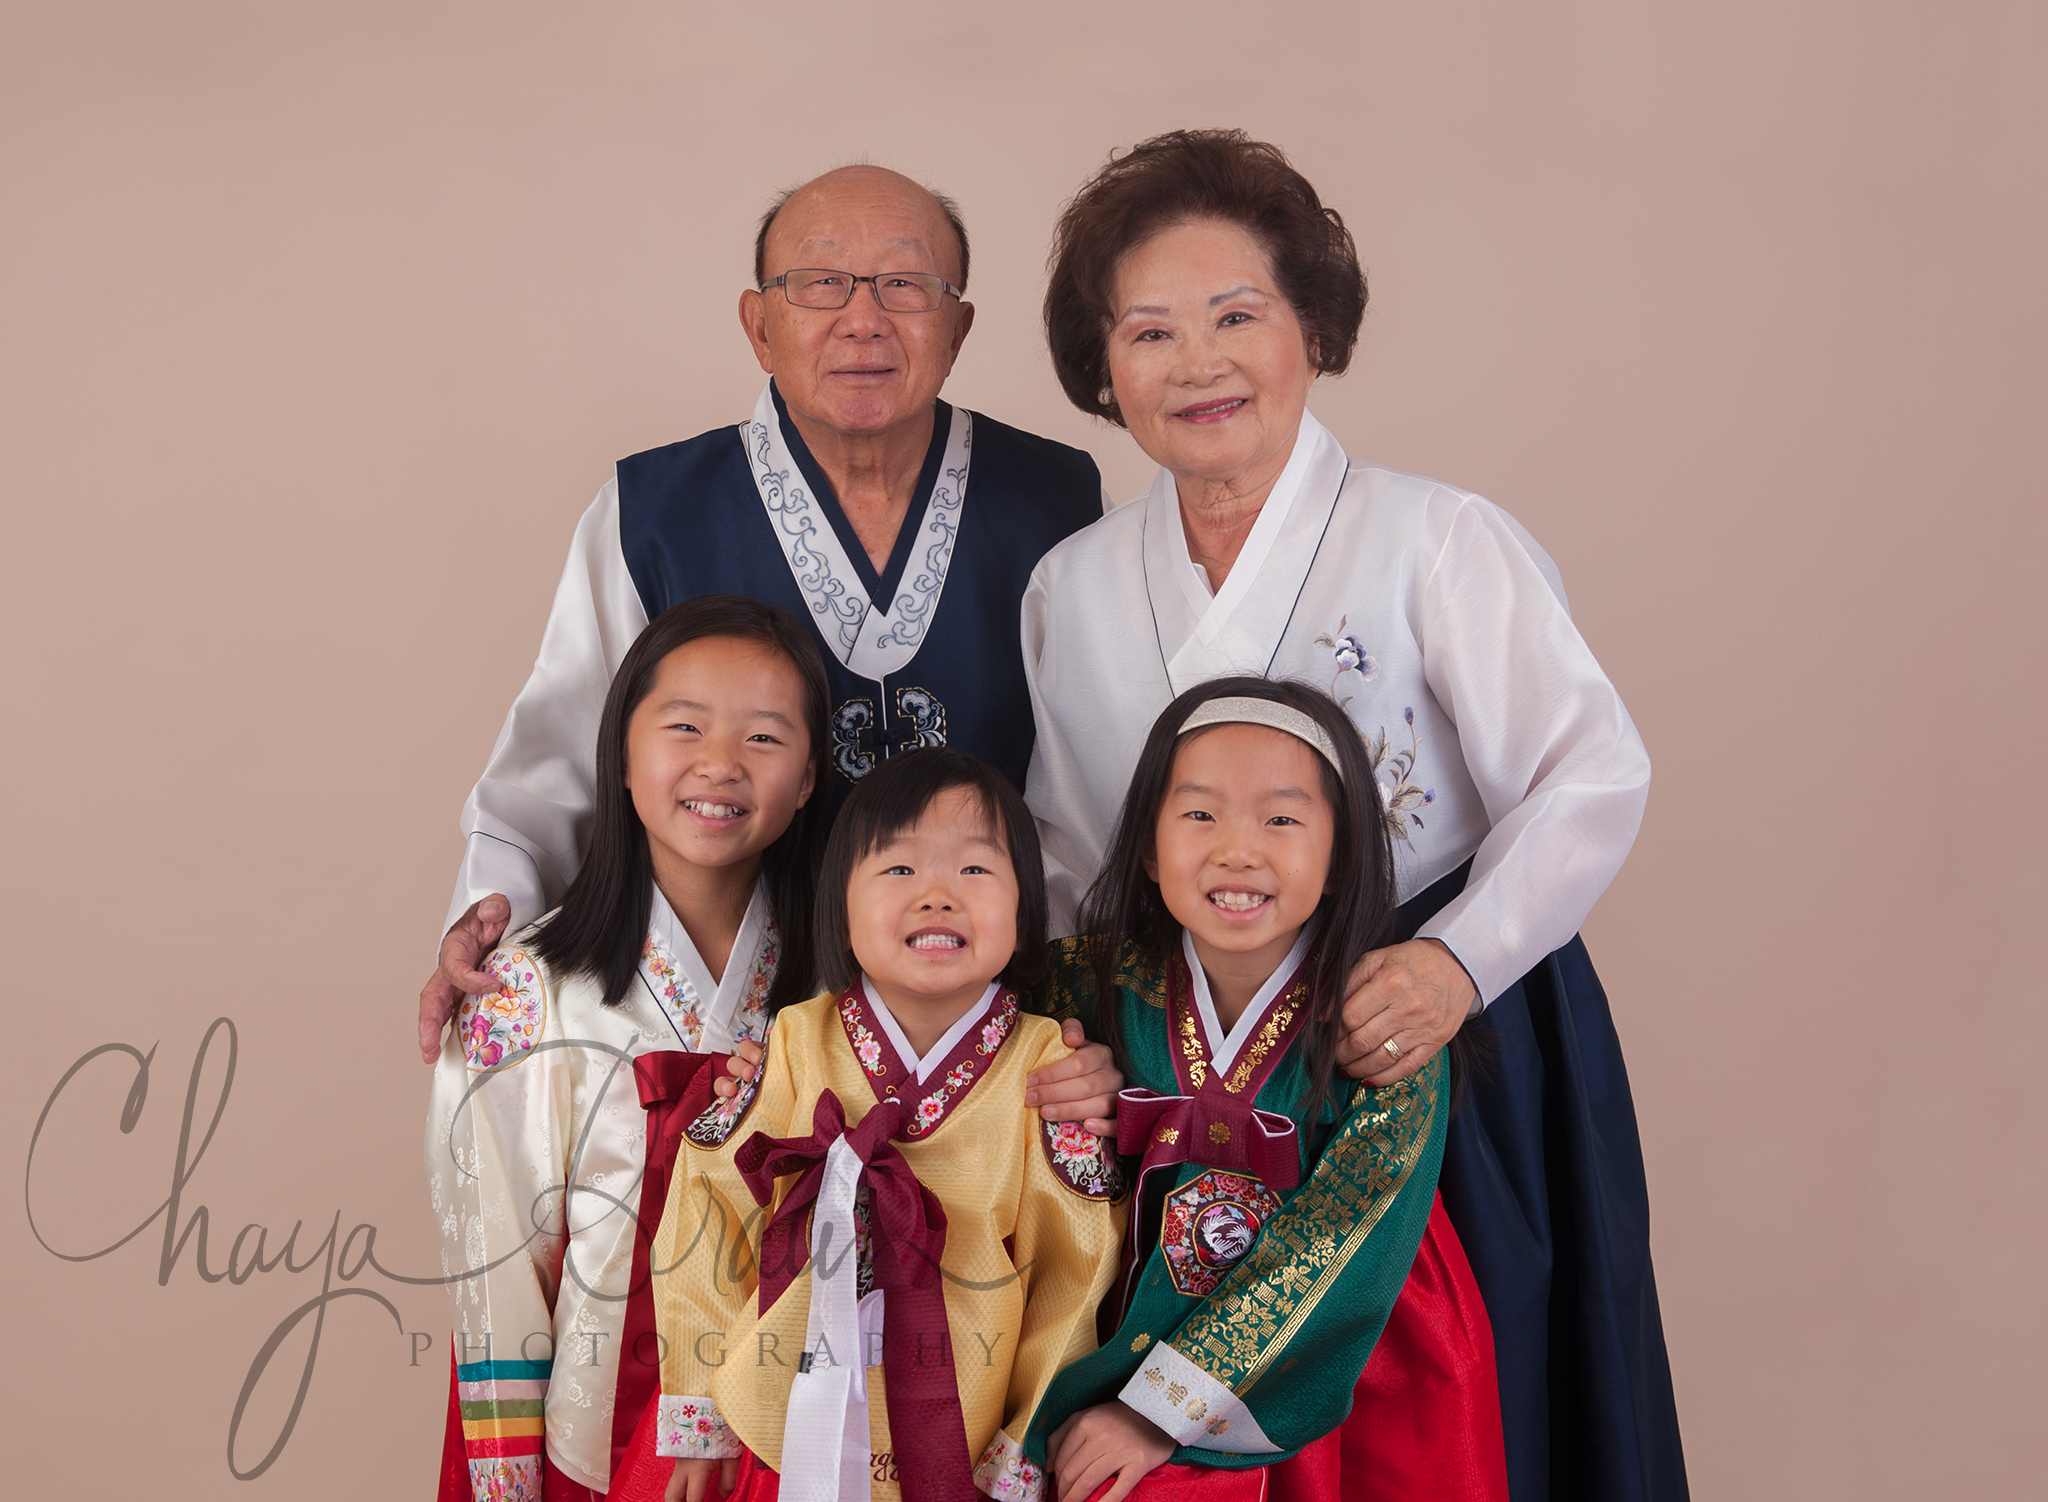 family with traditional Korean clothing photo